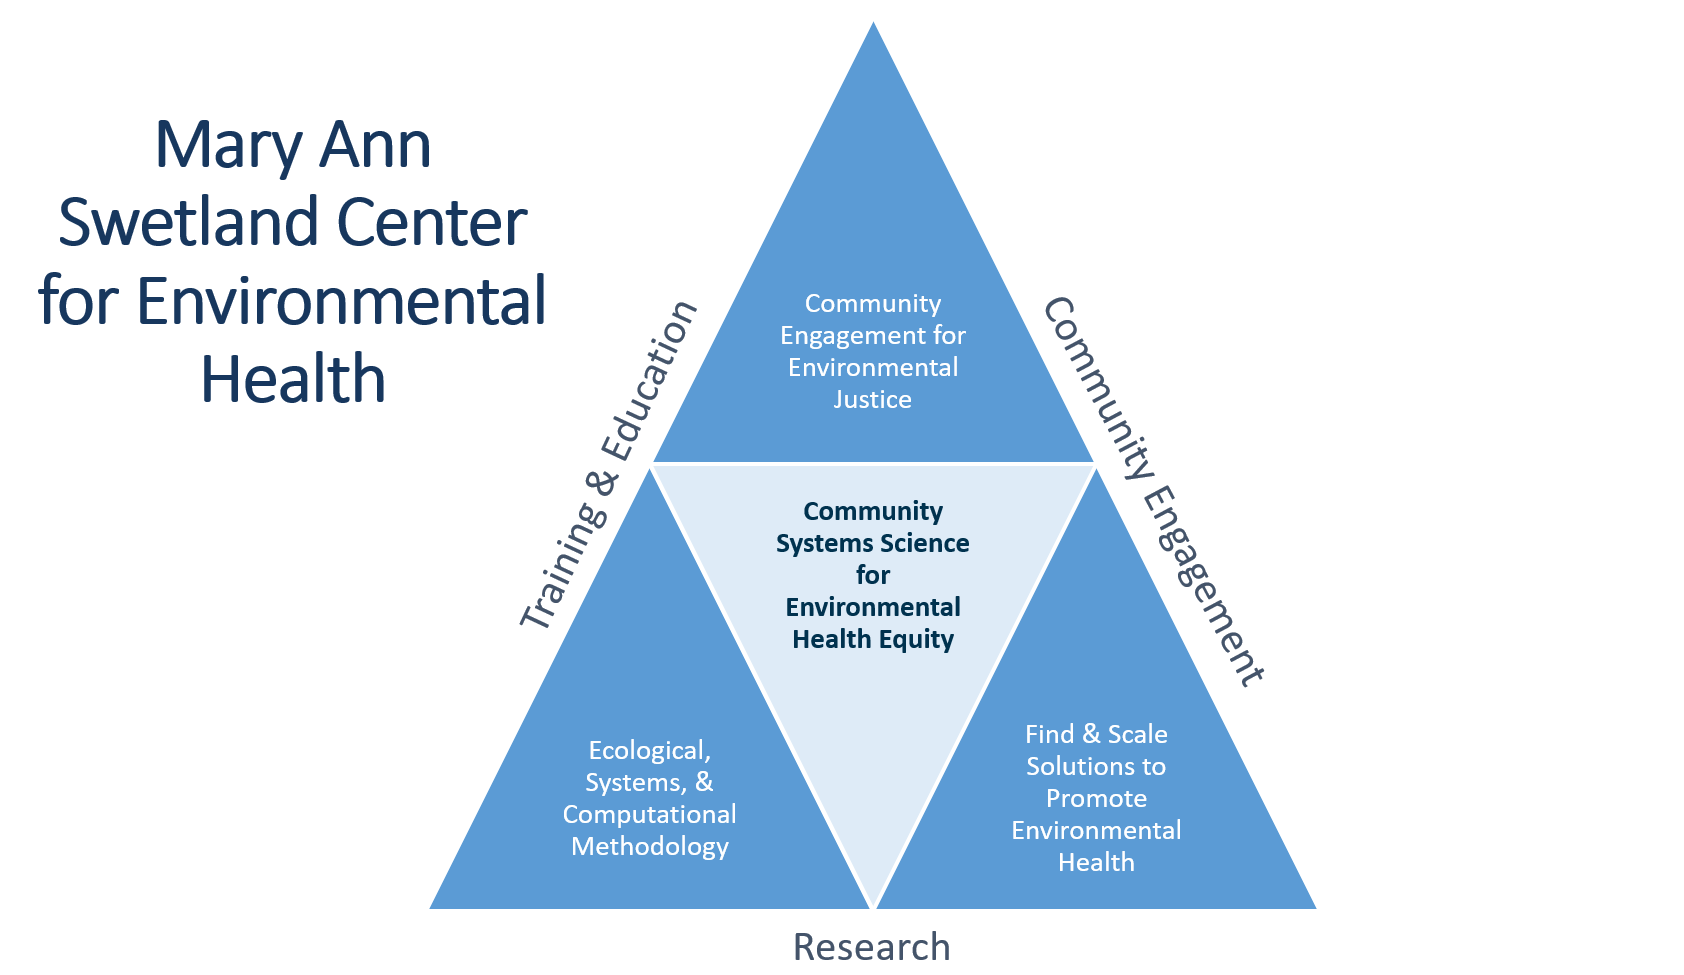 Swetland Center's approach to environmental health graphic